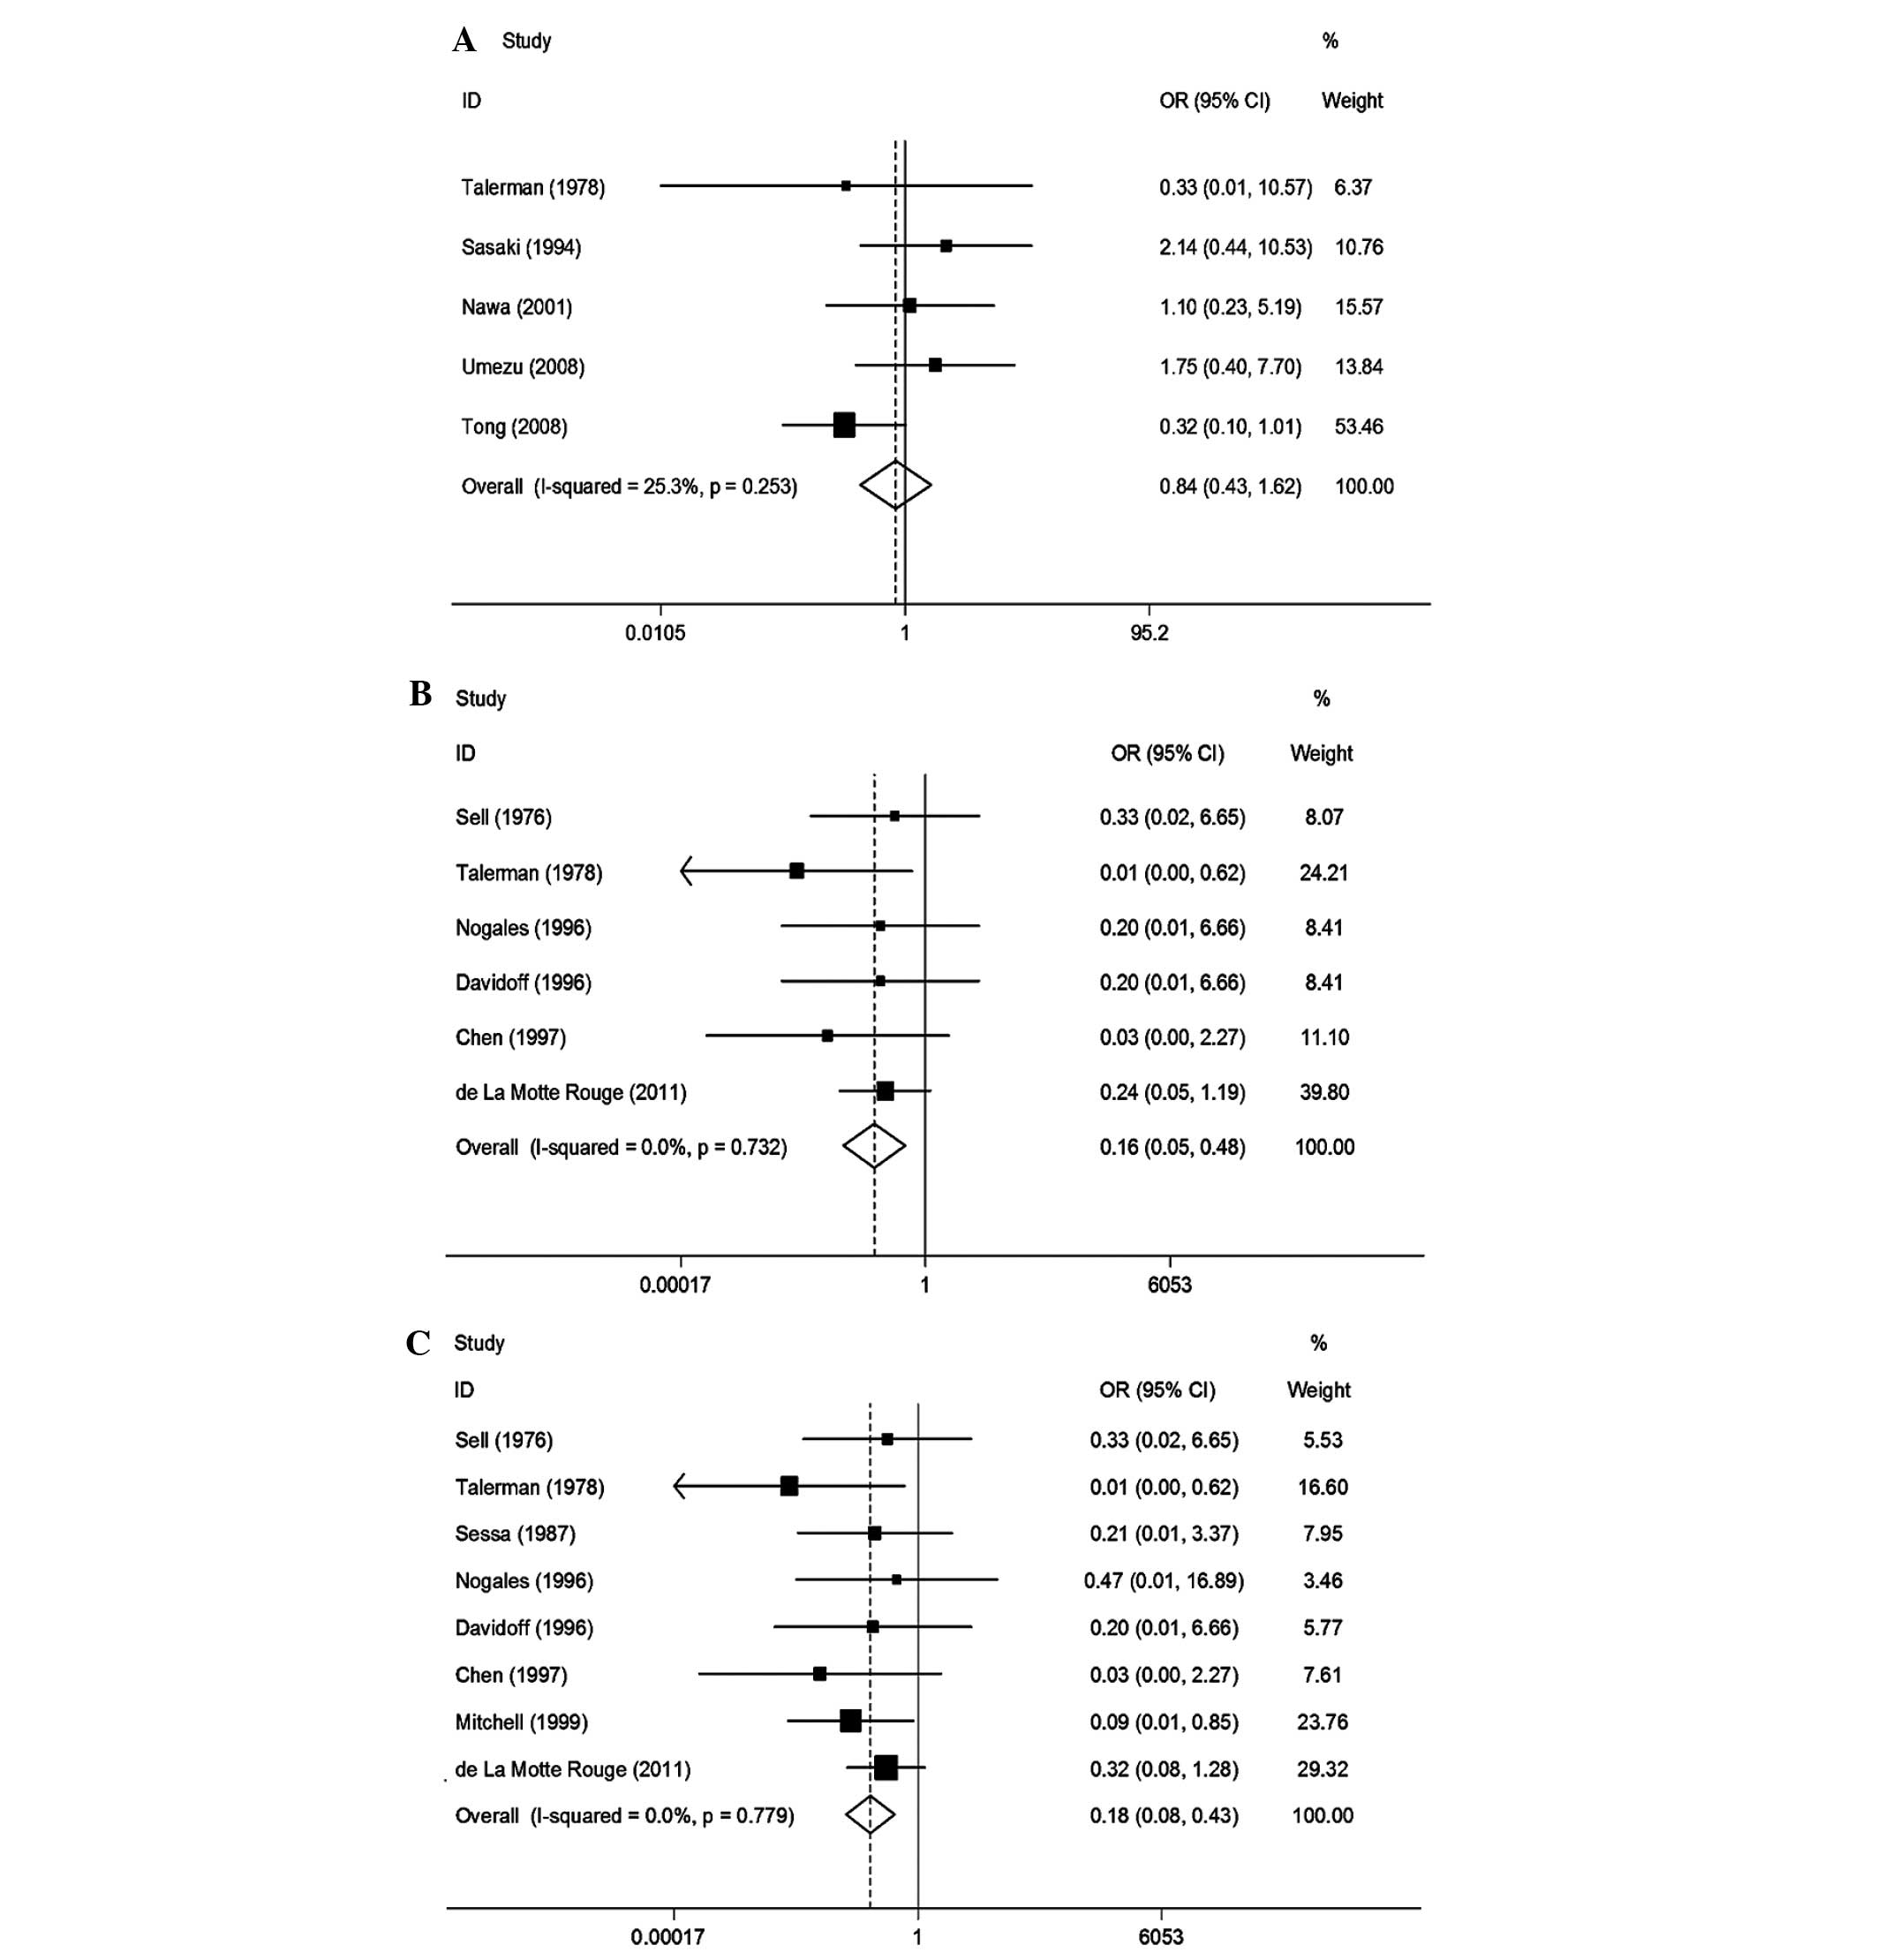 B Effect Of Postoperative Afp Level On Os C Relapse Free Survival Or Odds Ratio Ci Confidence Interval